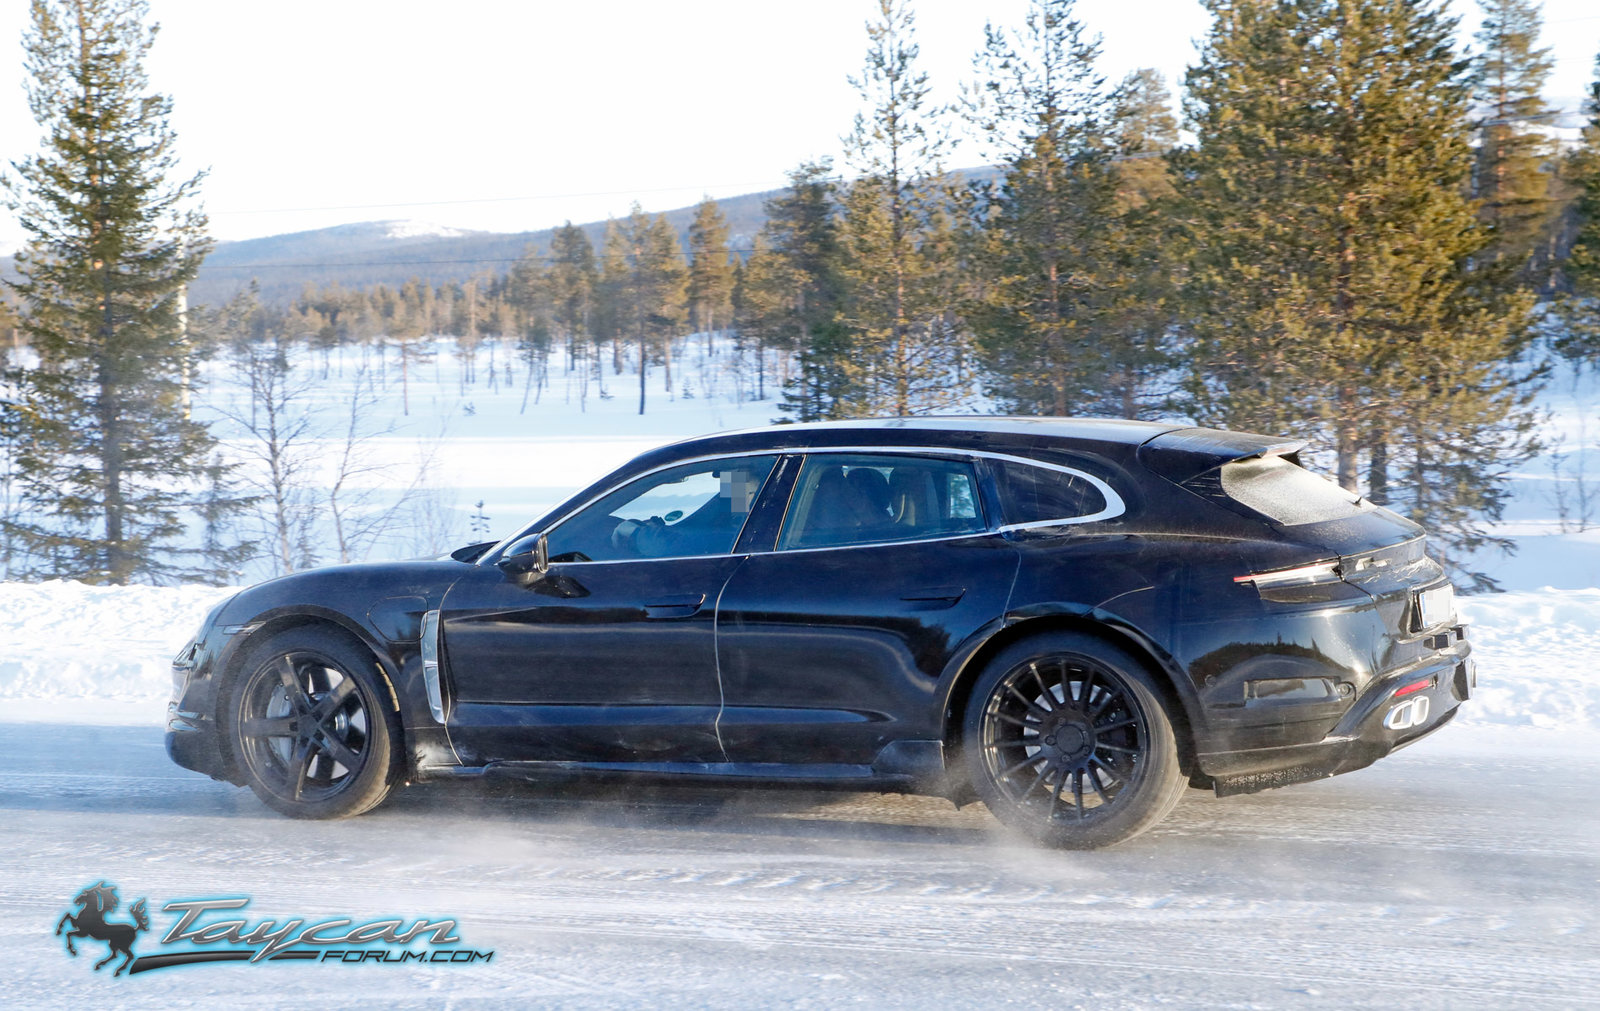 porsche-taycan-cross-turismo-winter-testing-5